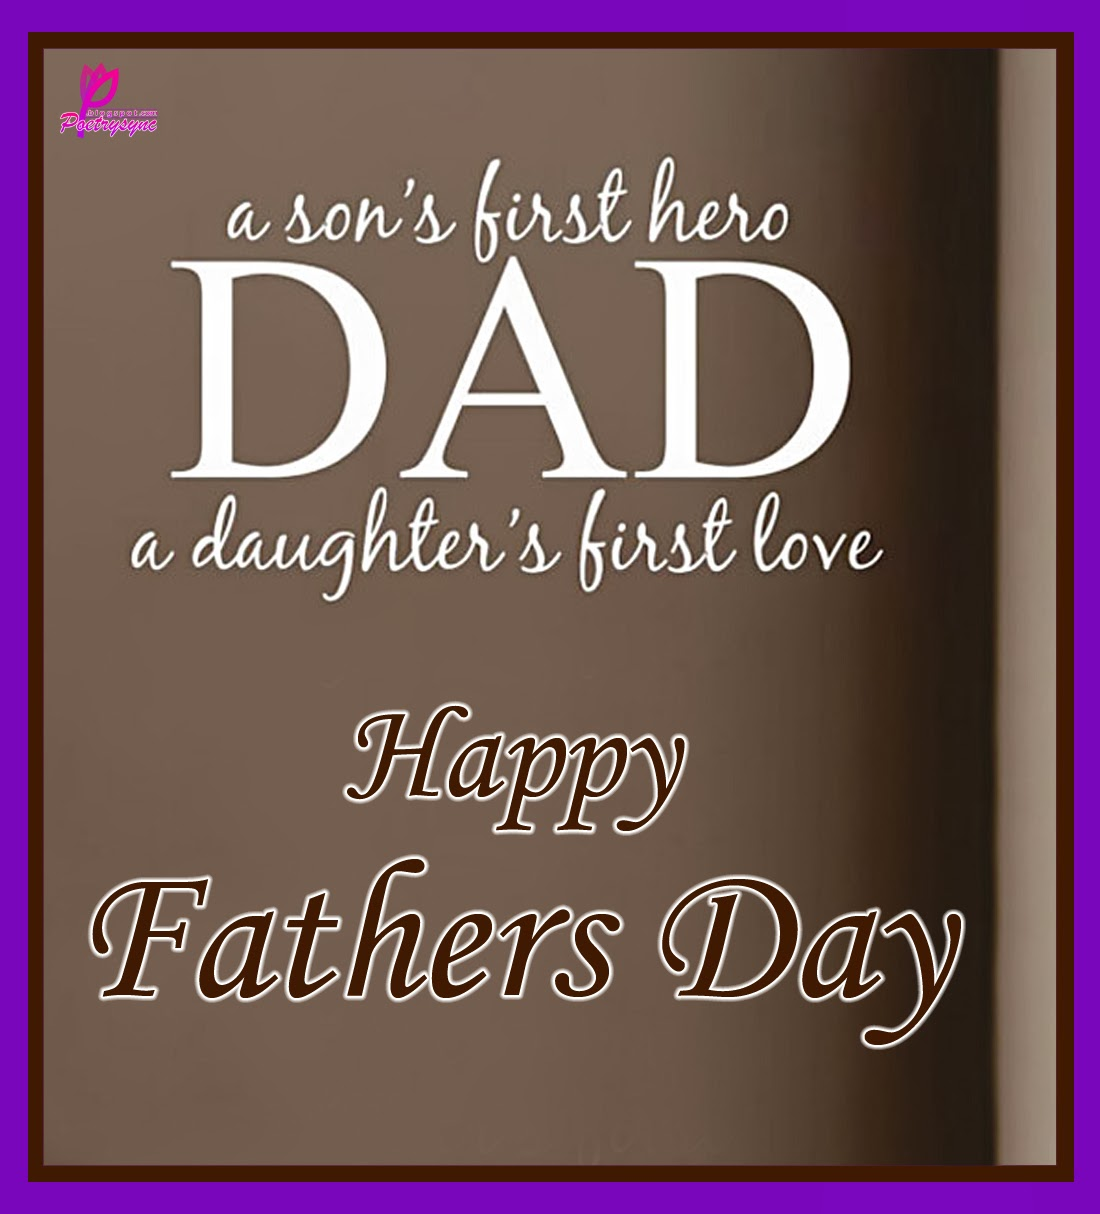 Fathers day quotes 6jpg HD Wallpapers HD images HD Pictures 1100x1214